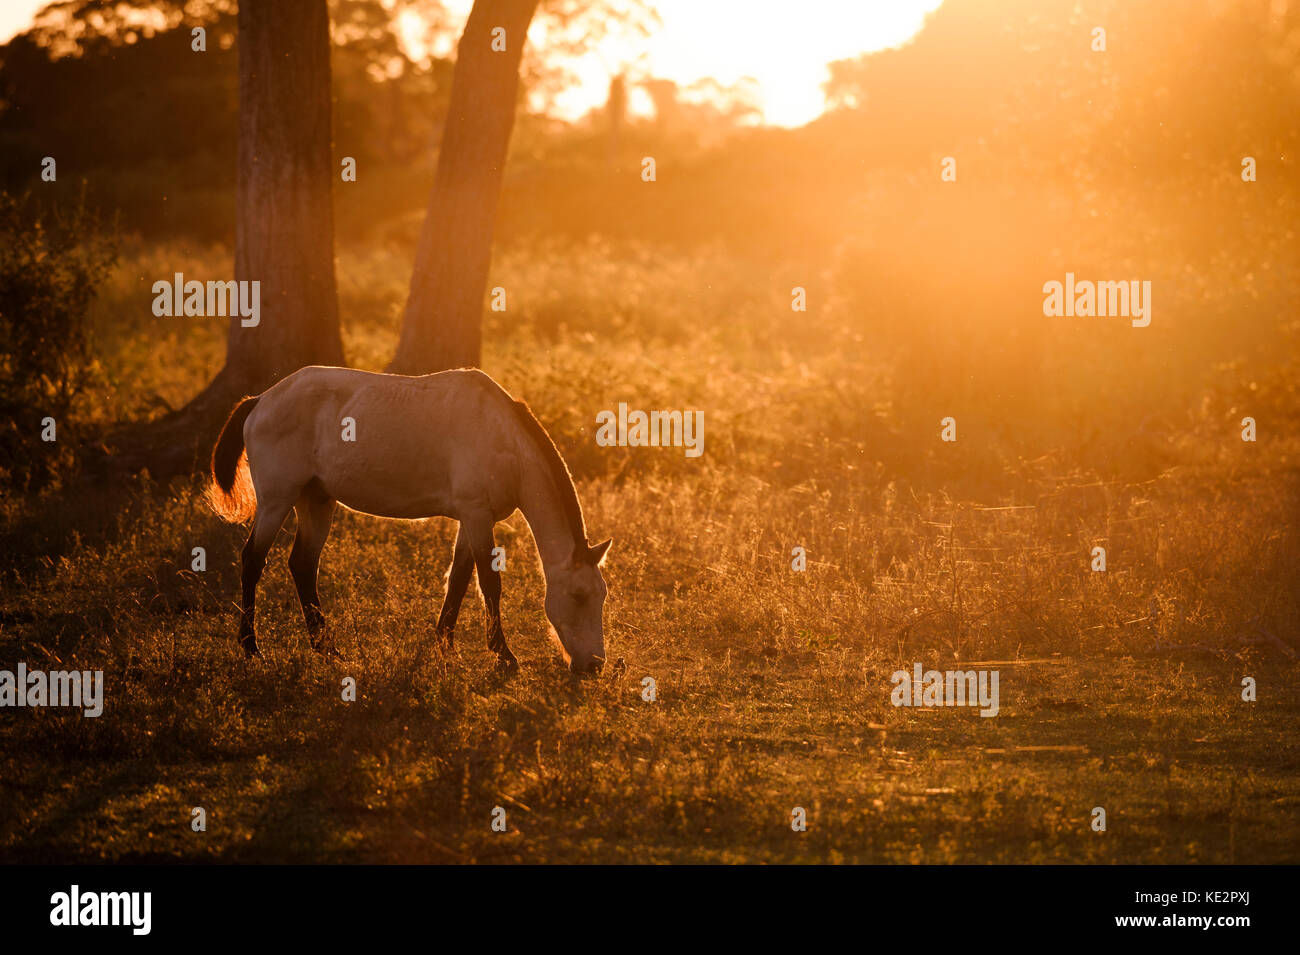 A horse from the Pantanal, Brazil - Stock Image